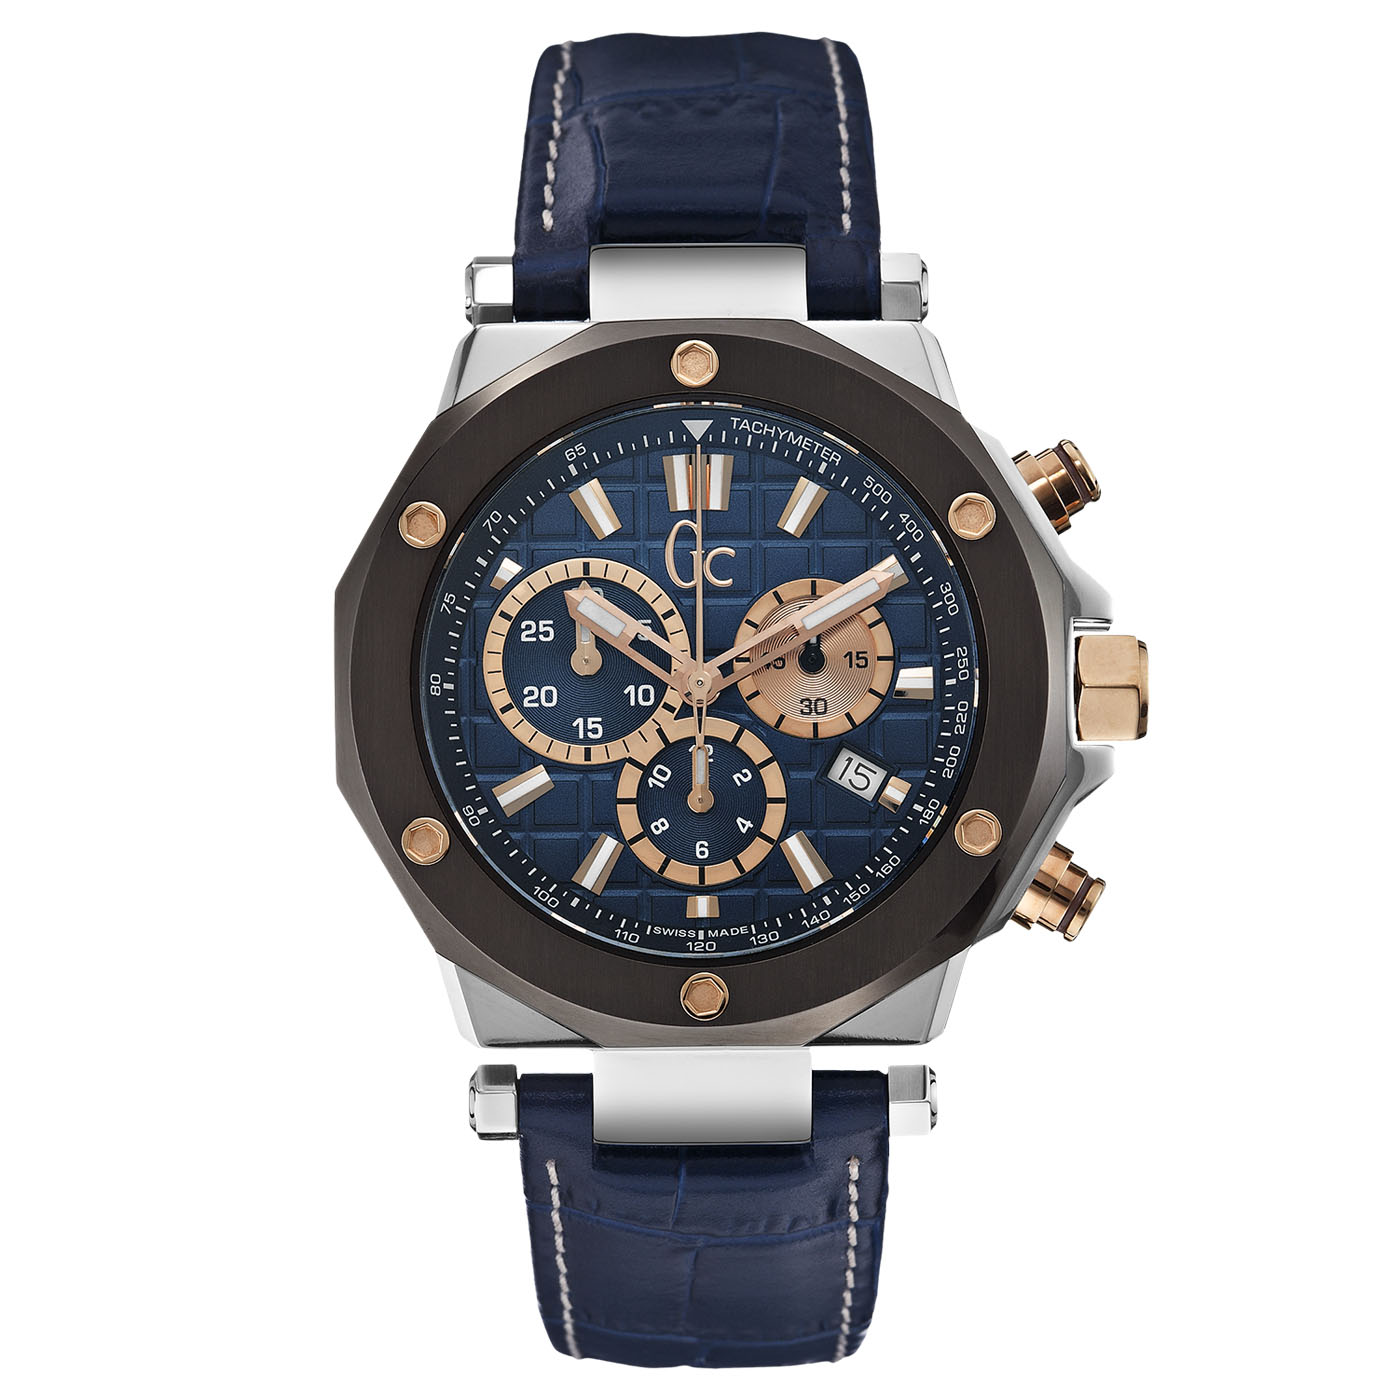 Reloj Gc -3 Sport Chic Collection Acero Esfera Azul 58b8bf30b880